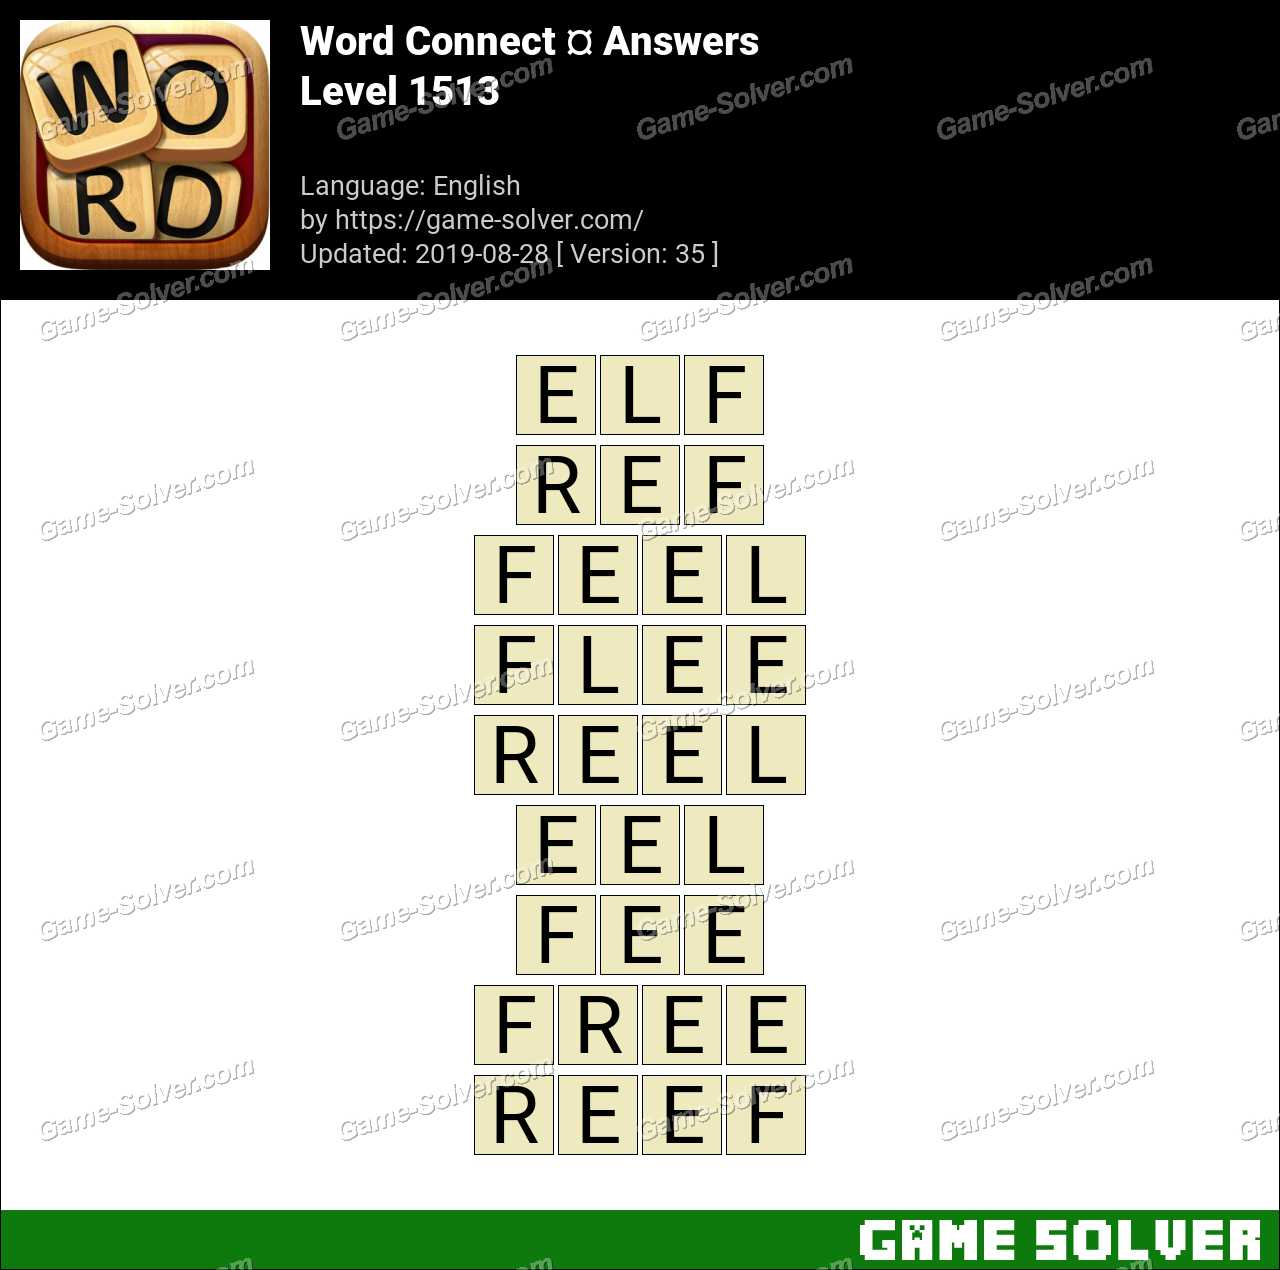 Word Connect Level 1513 Answers